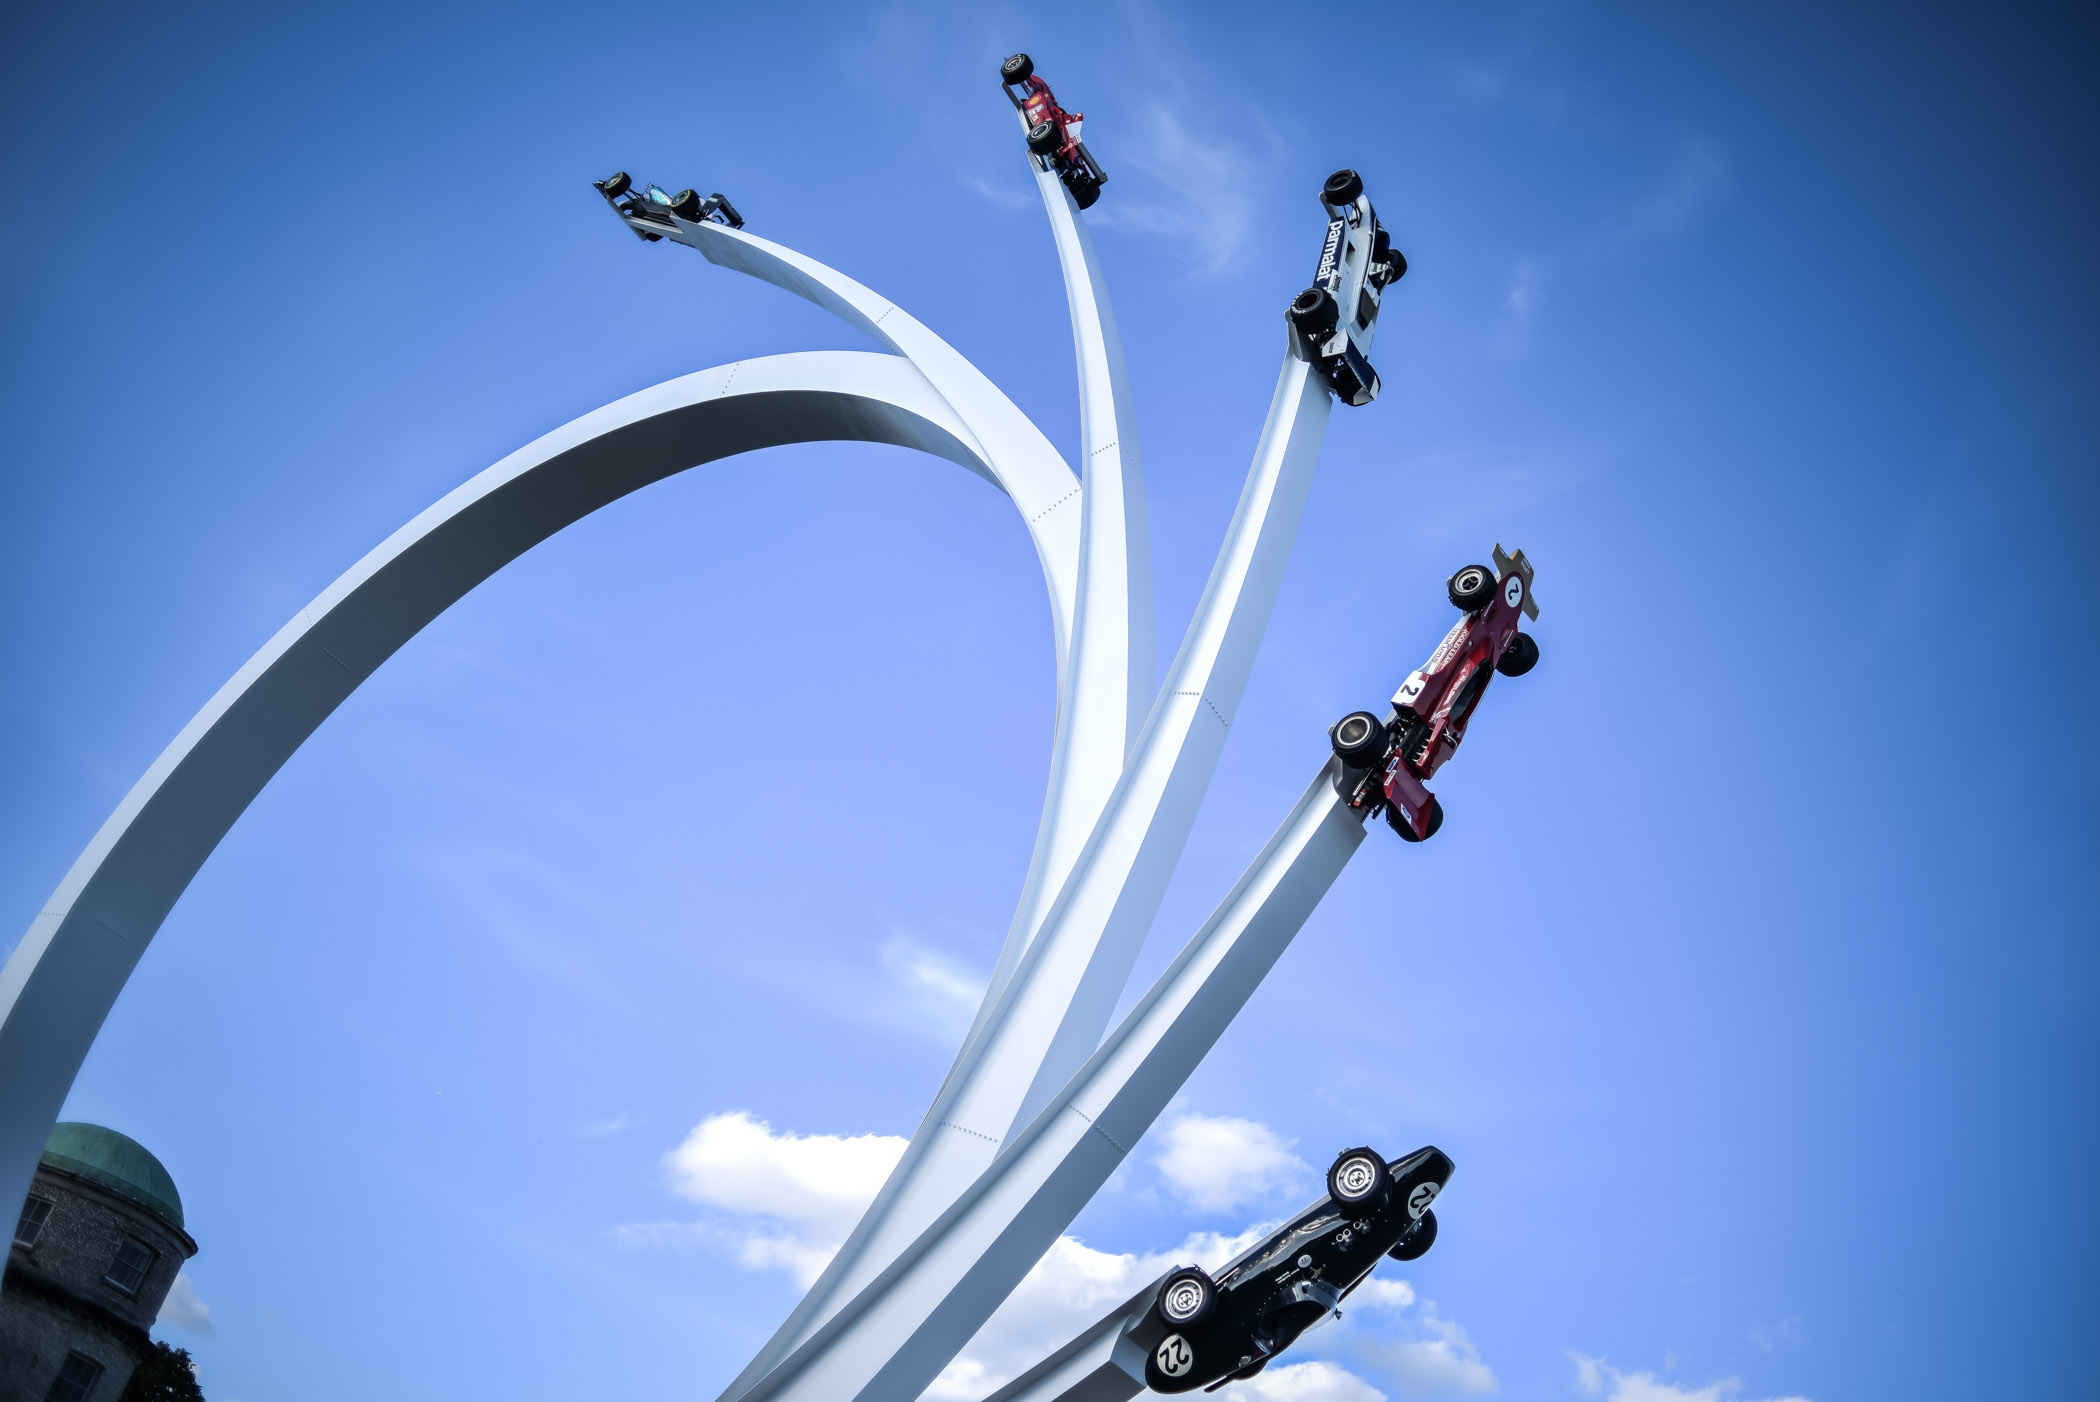 Goodwood Festival of Speed x Montblanc - photo report - 1